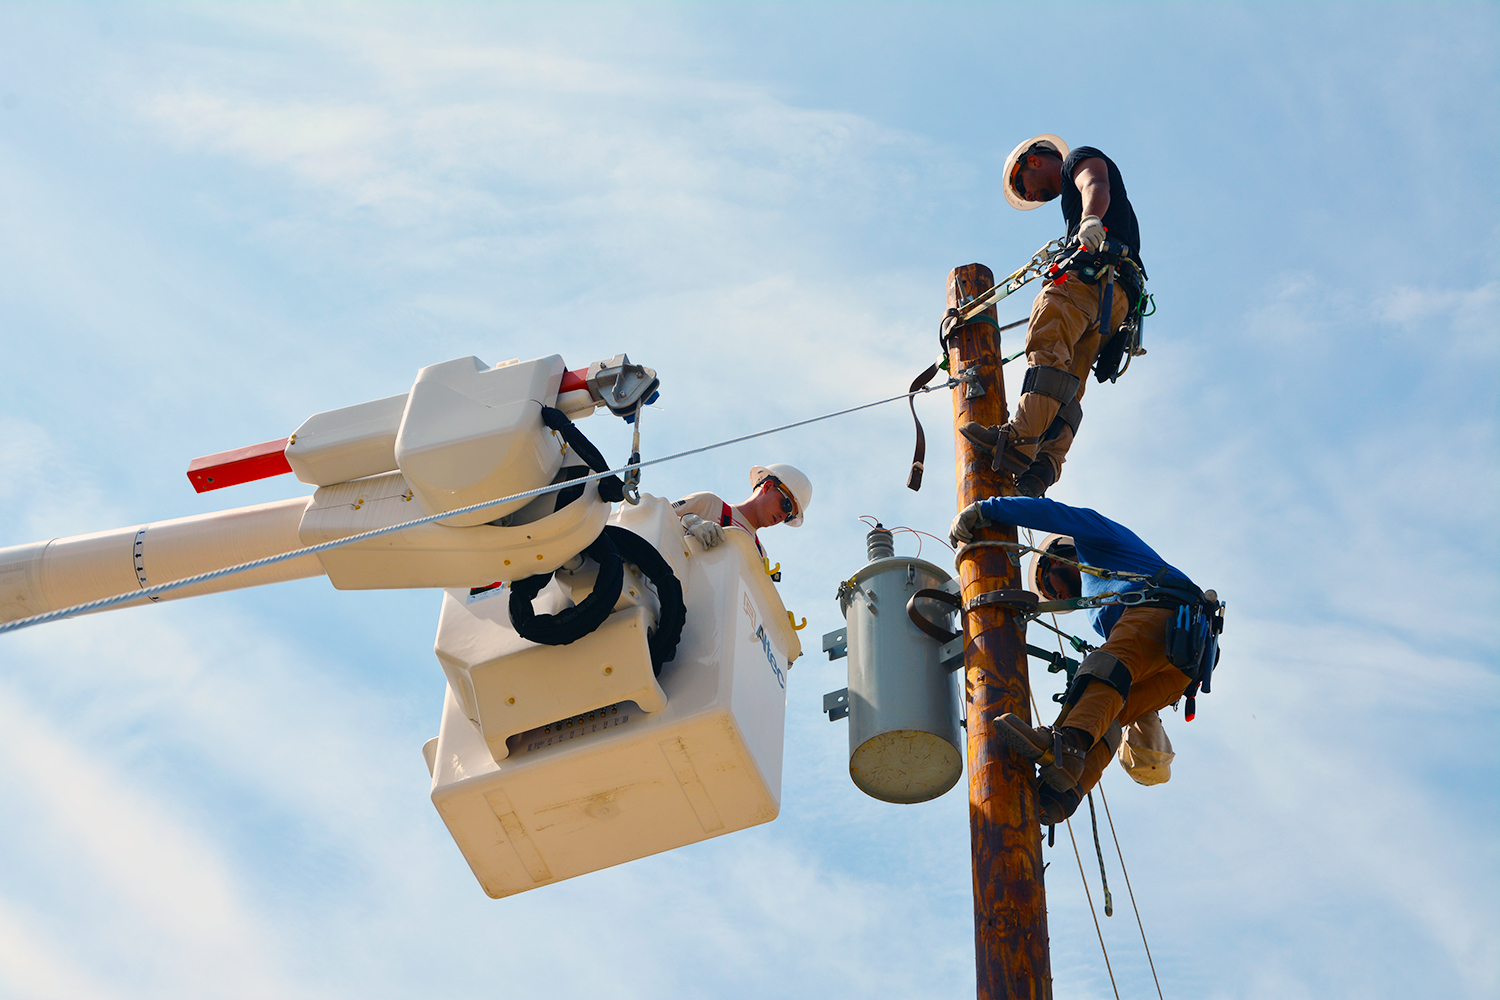 Electric lineman students working on a pole top